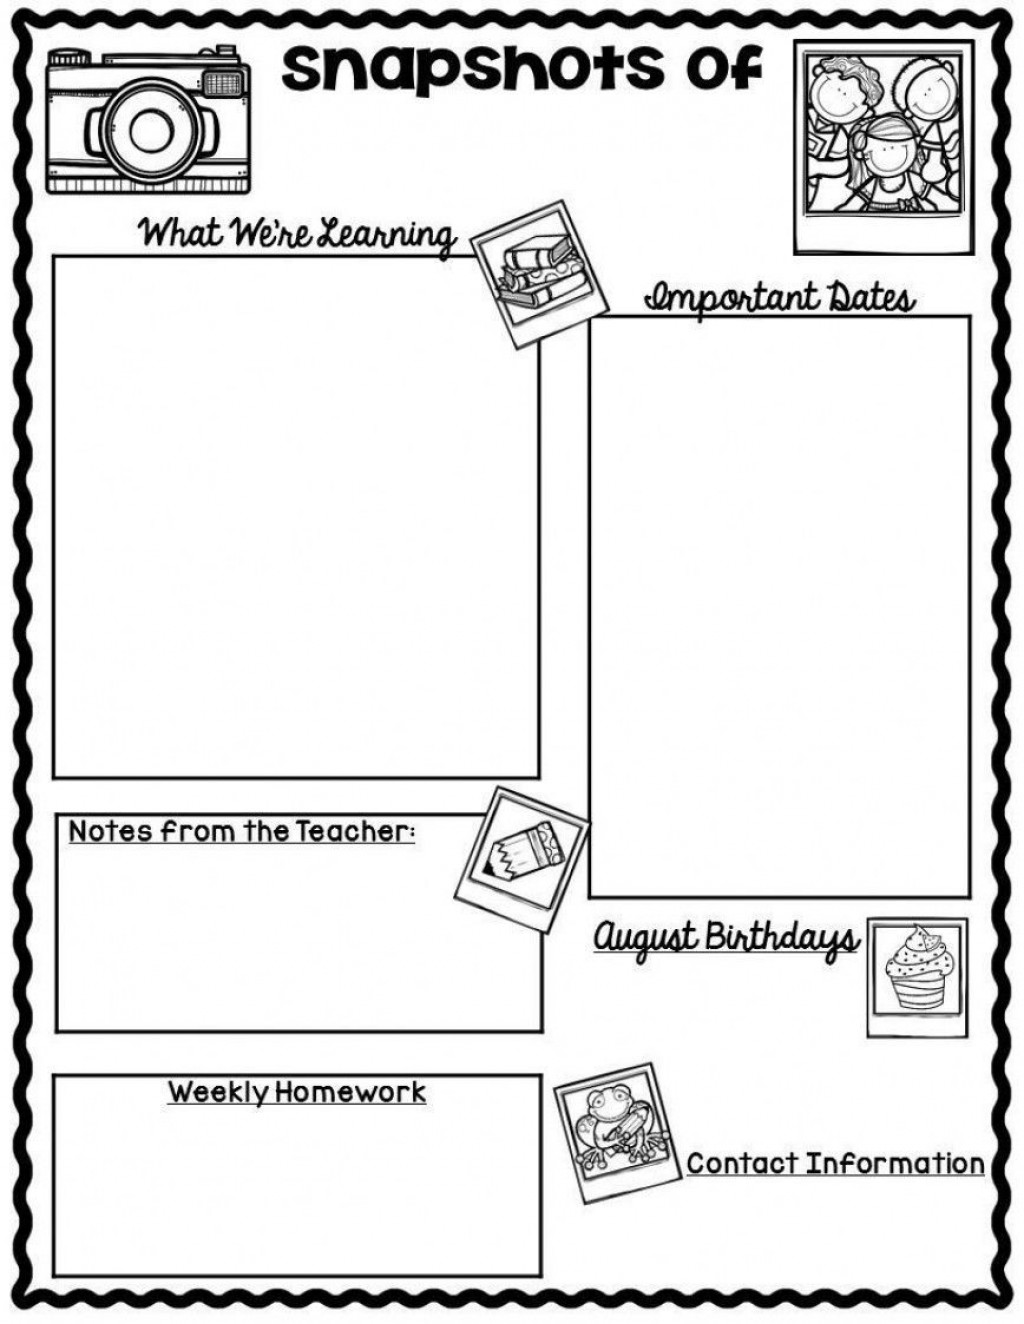 001 Amazing Weekly Newsletter Template For Teacher Free Highest Clarity Large